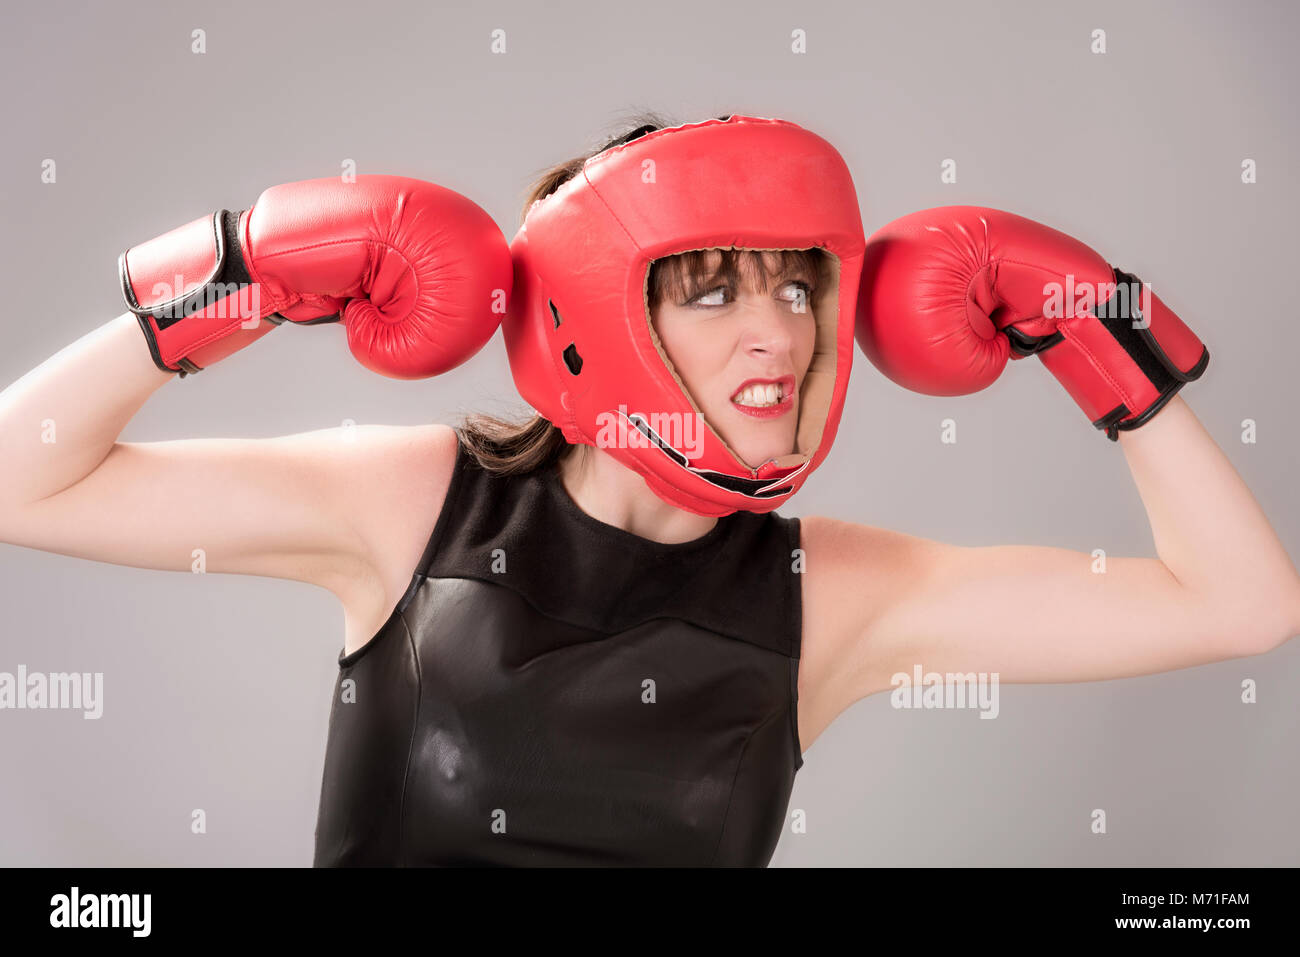 Woman boxer with an facial expression wearing a red headguard and red boxing gloves, Circa 2018 - Stock Image